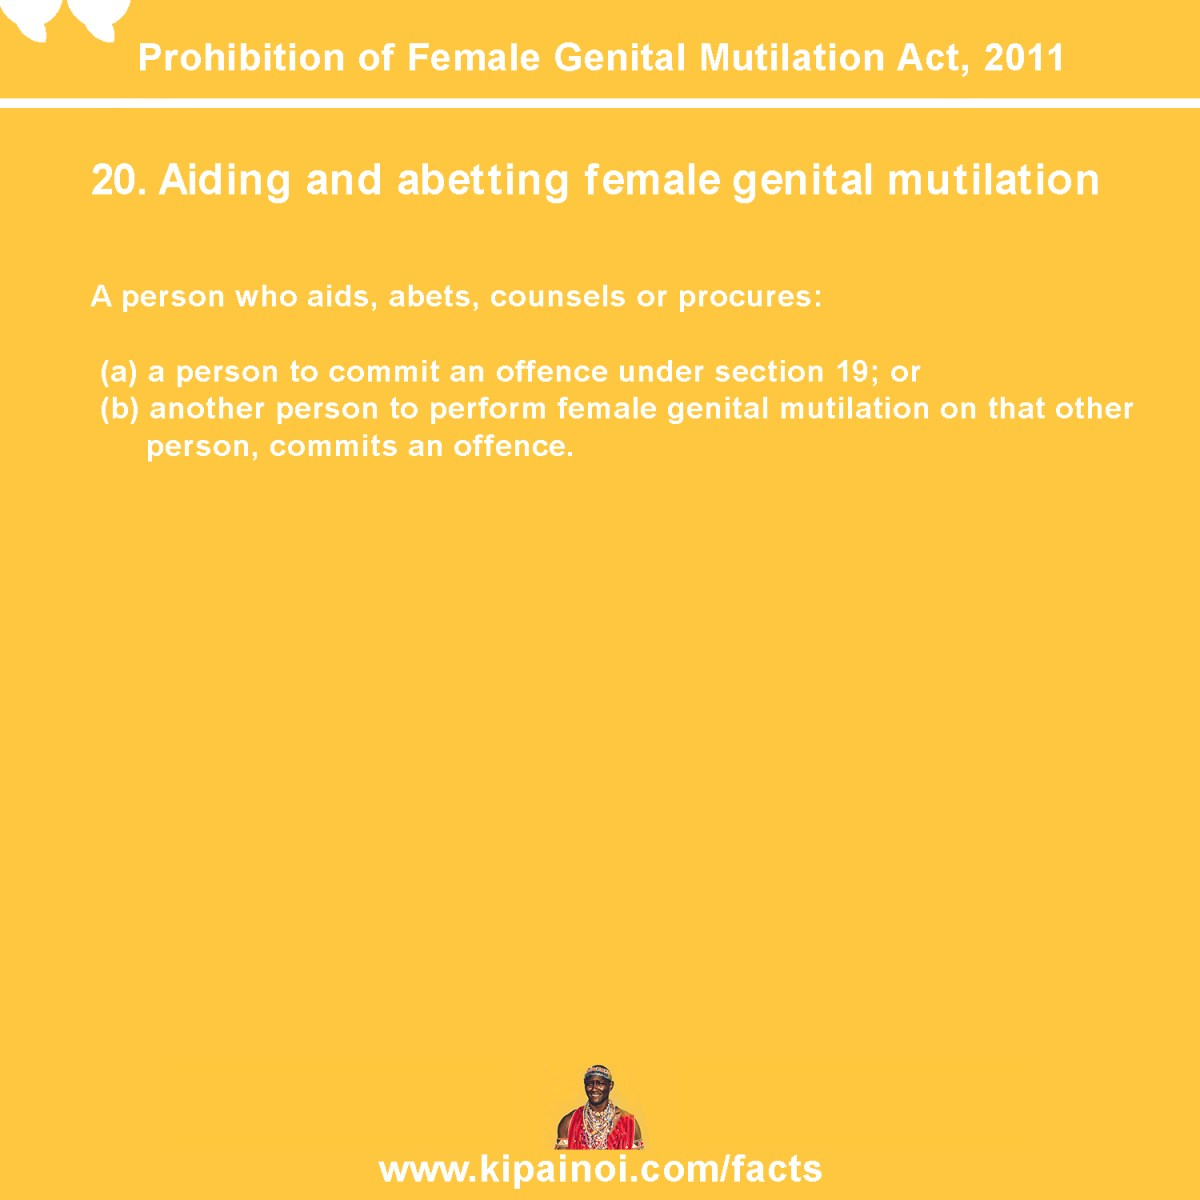 20. Aiding and abetting female genital mutilation